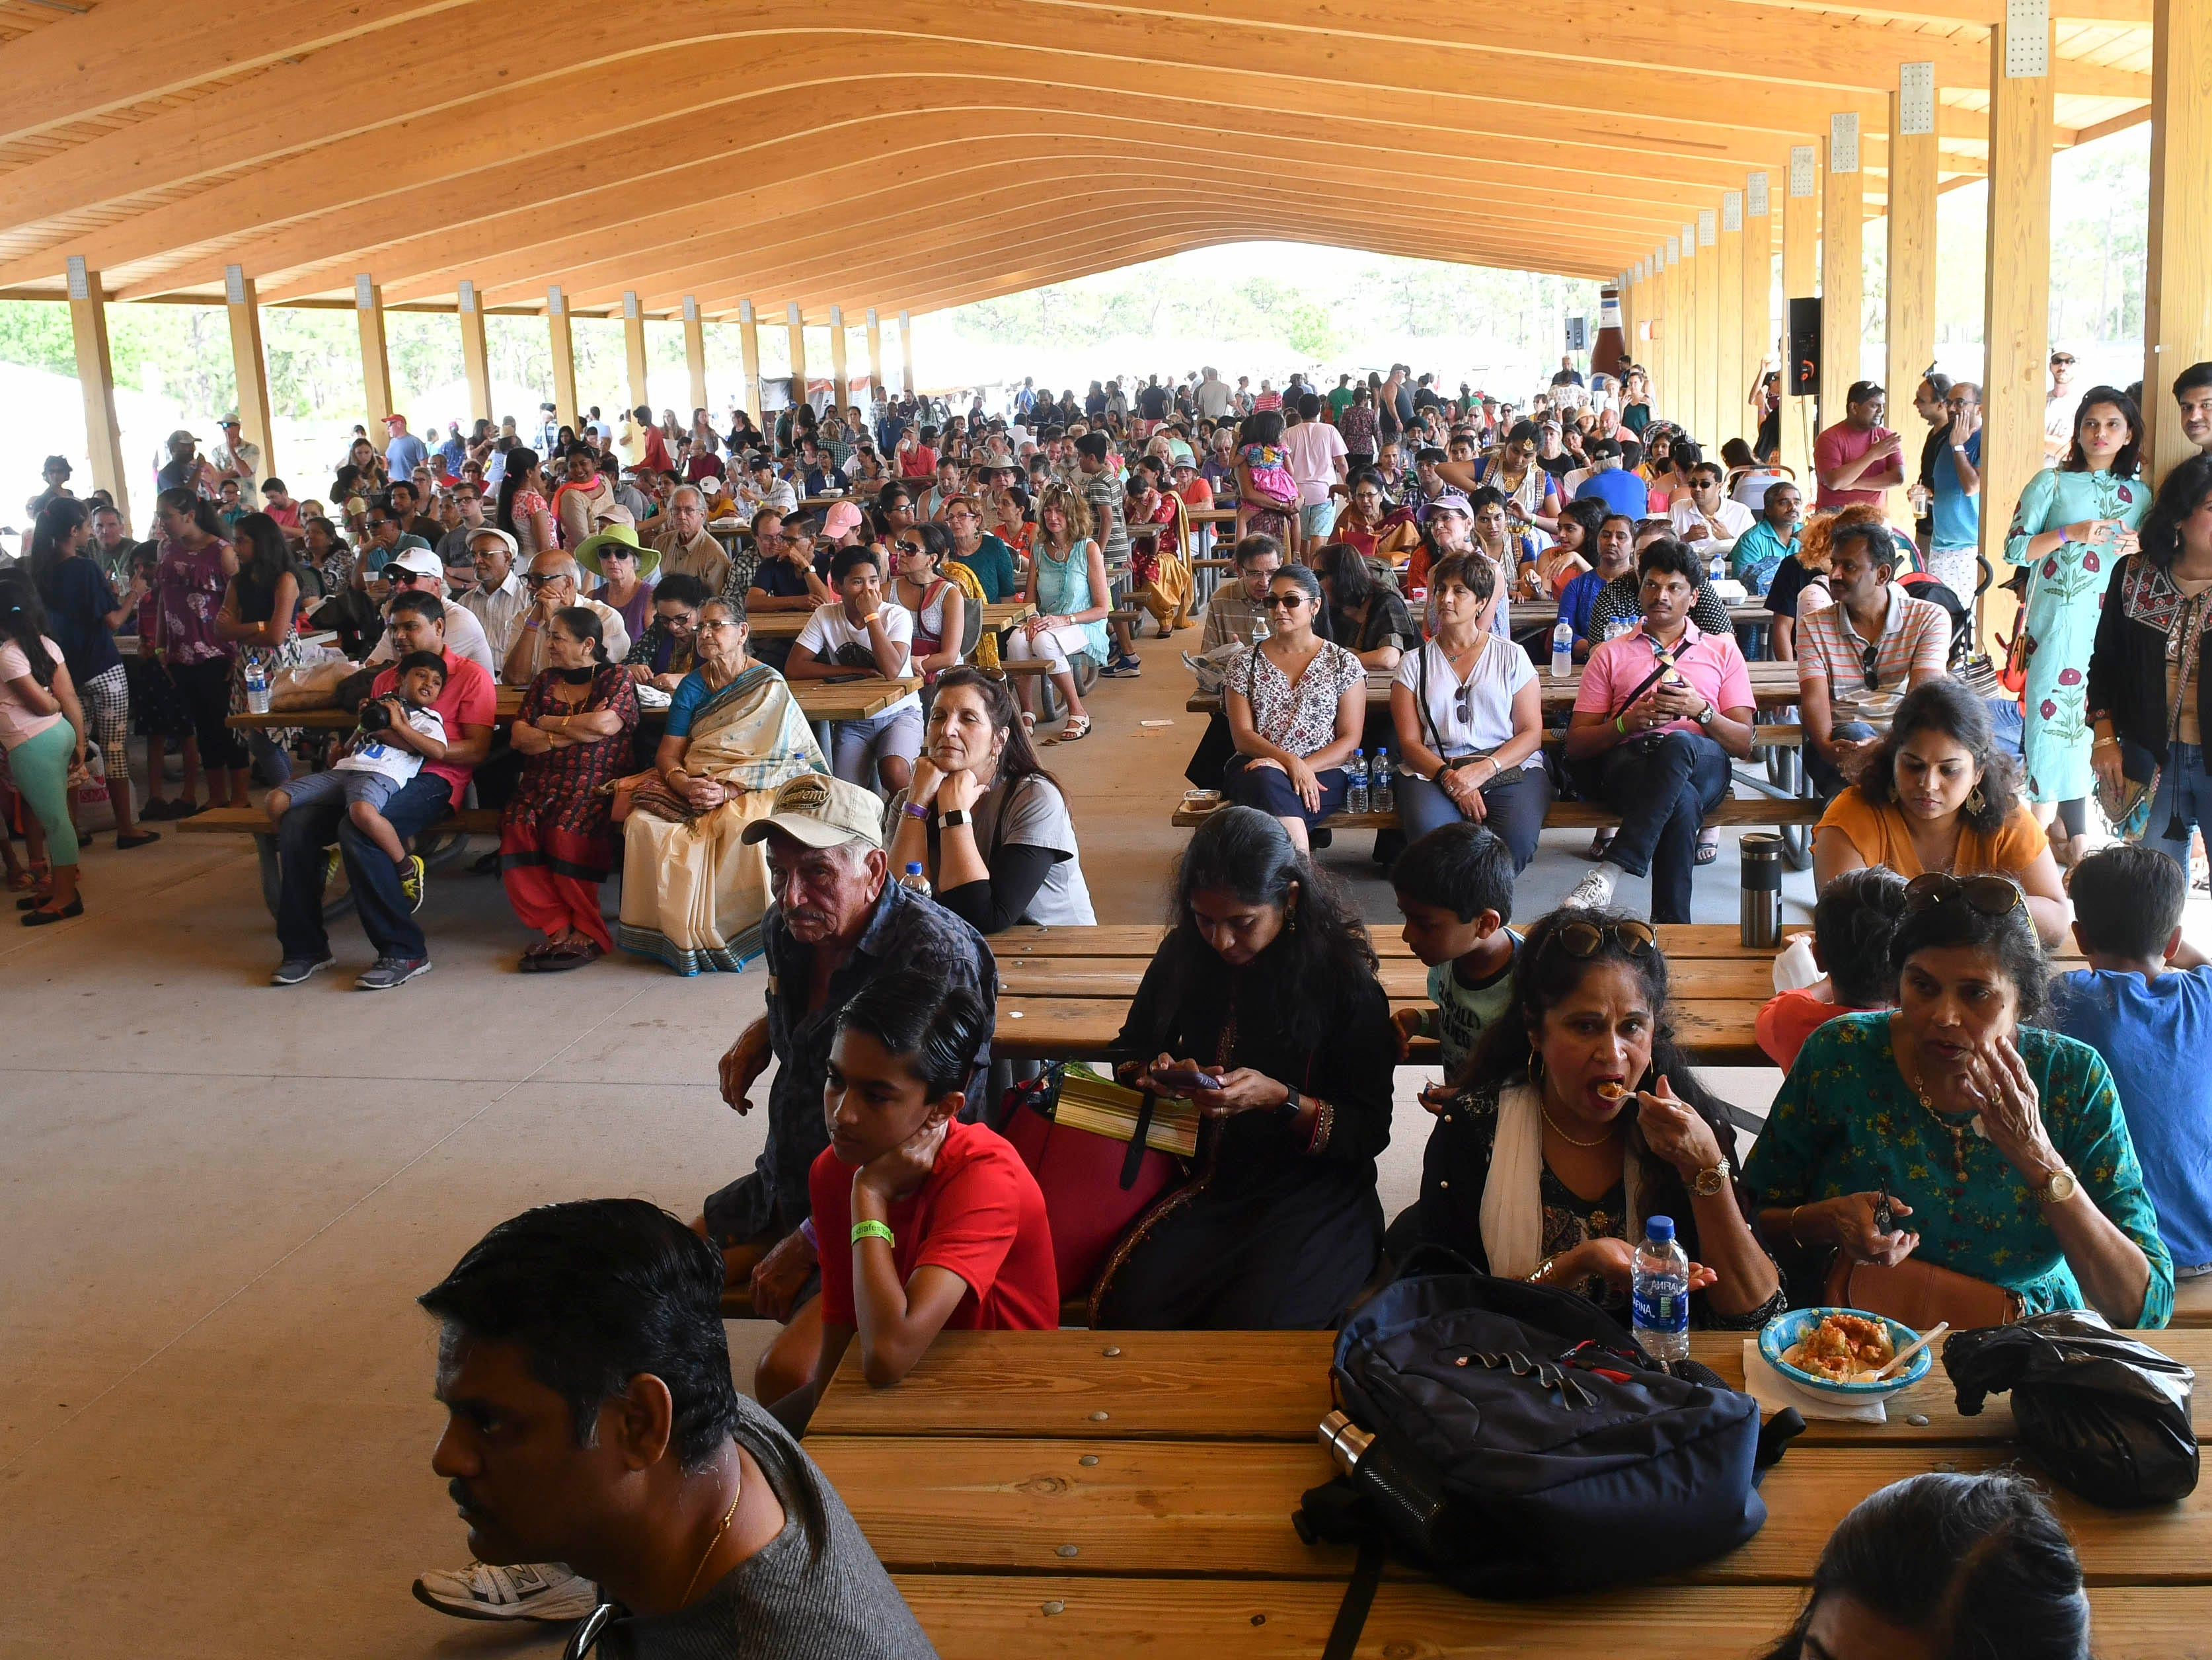 Locals enjoy the food dancing, crafts and culture of Indiafest at Wickham Park's main pavilion.